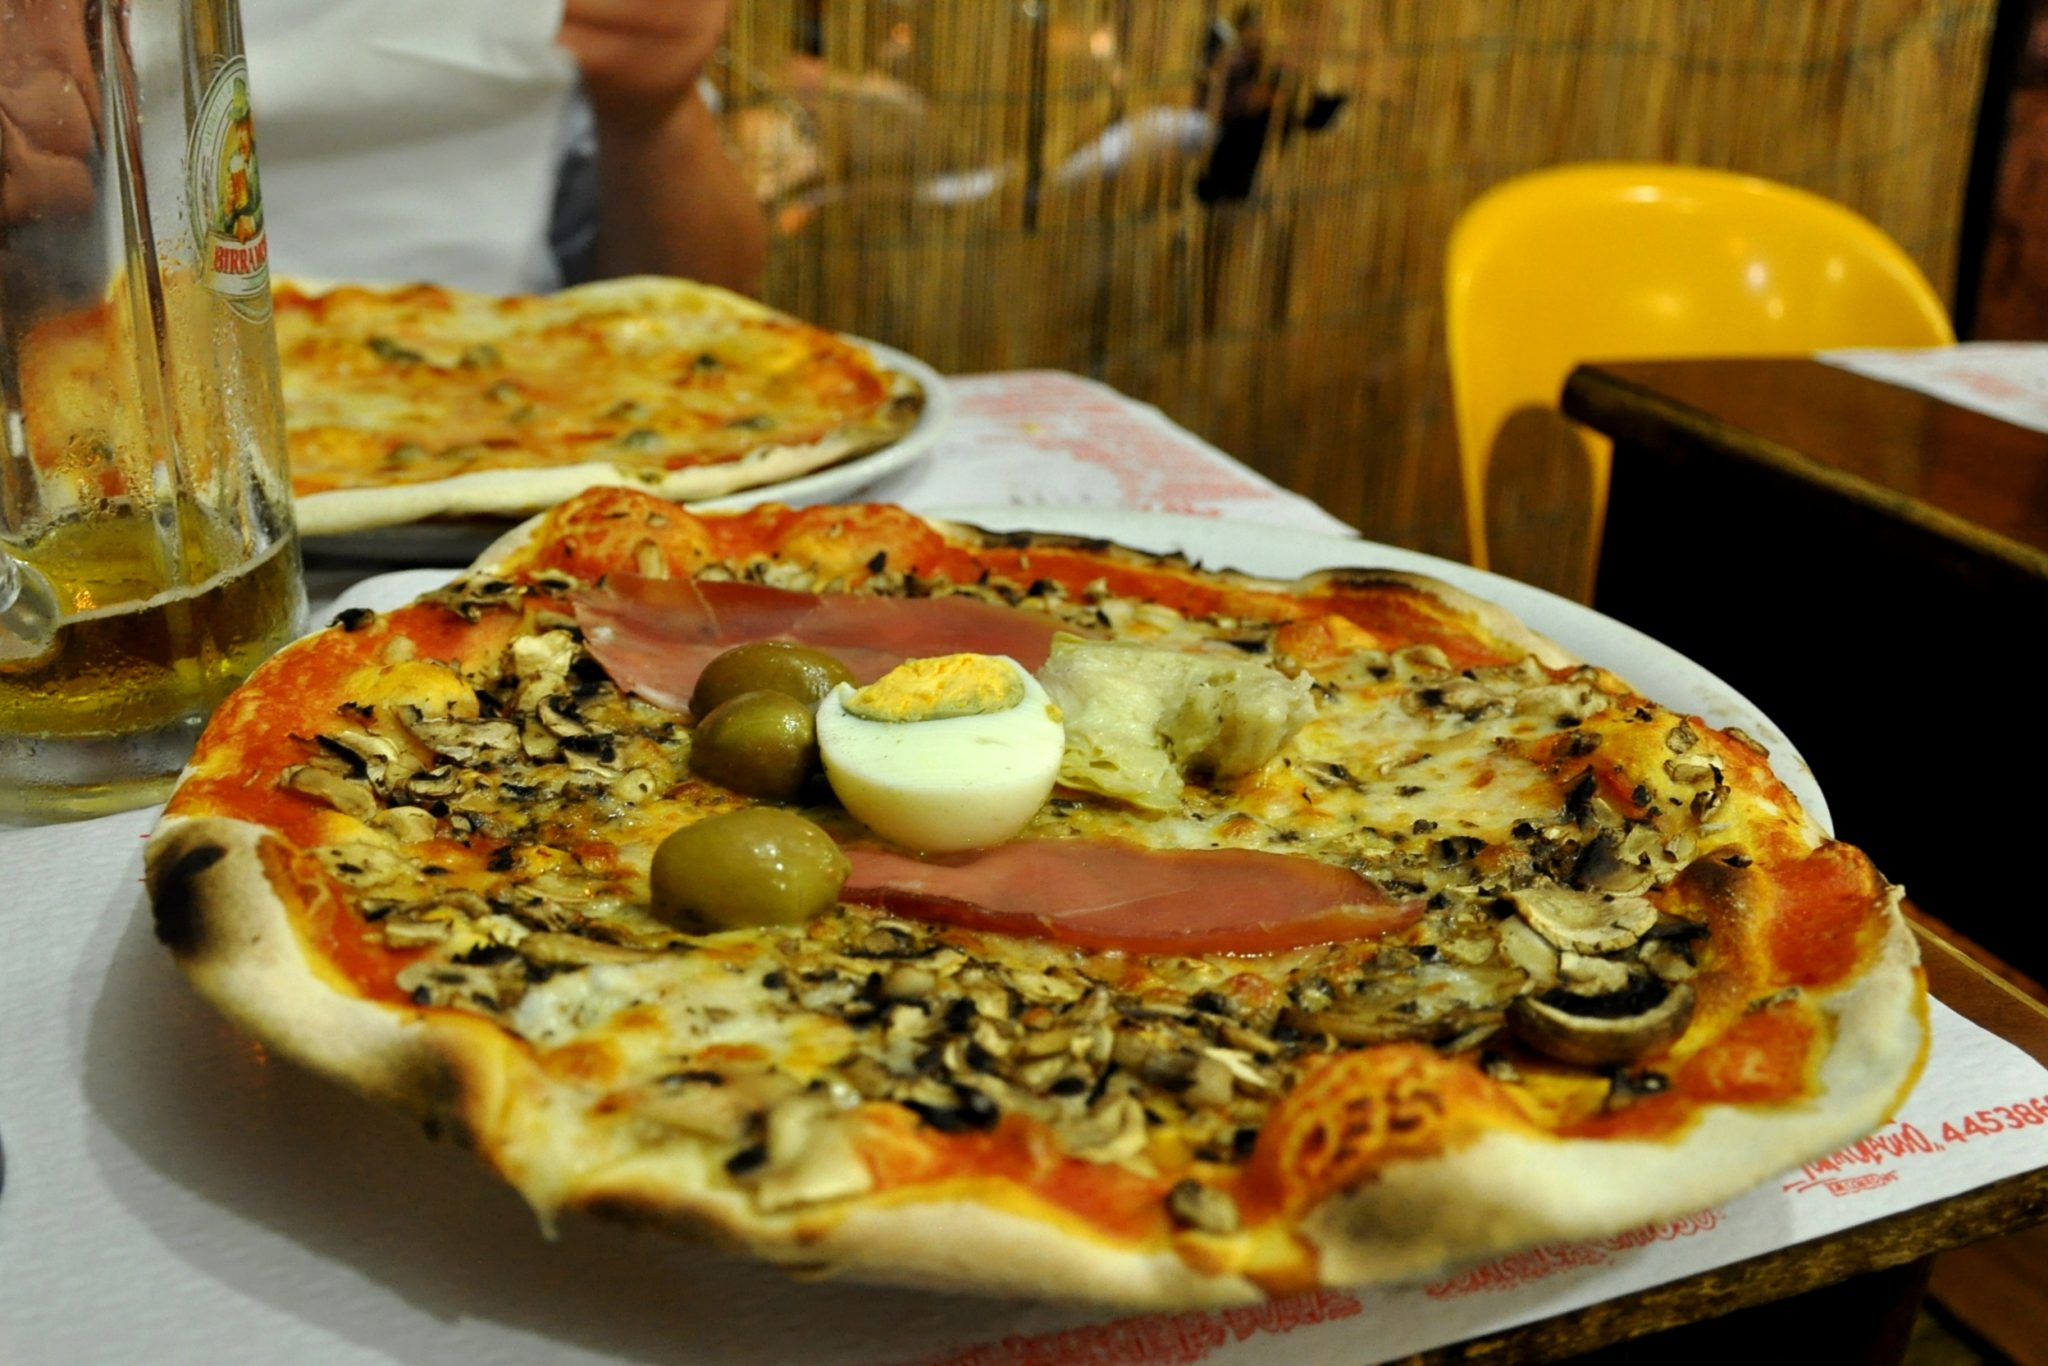 If you do your research, you can have pizza like this. Formula Uno, Rome